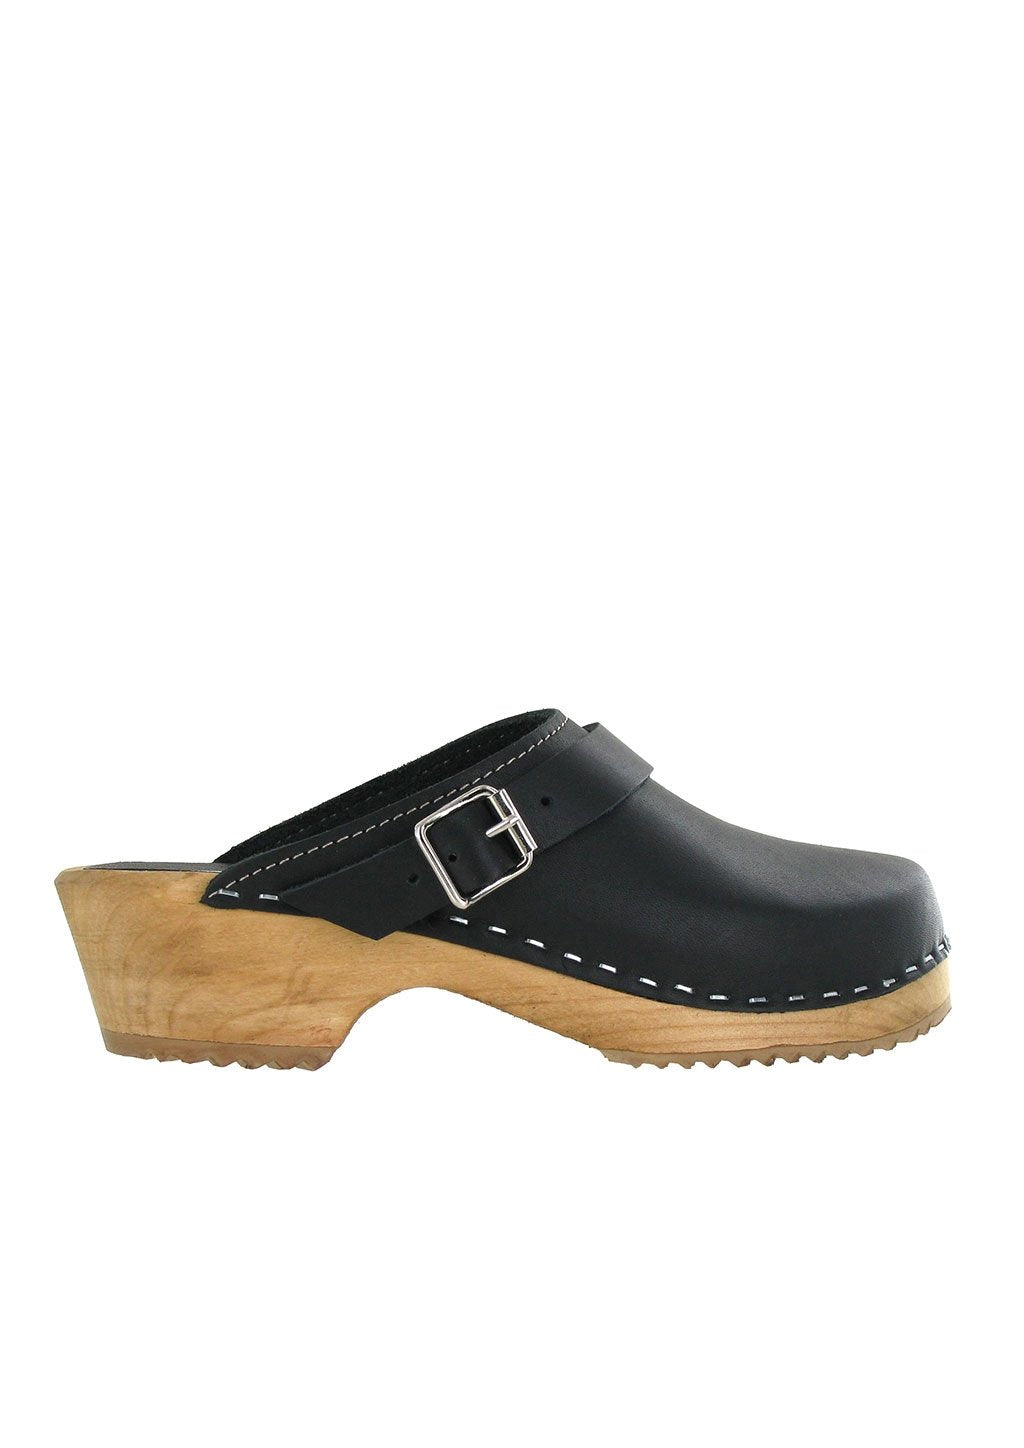 Mia Women's Alma Clog Black leather